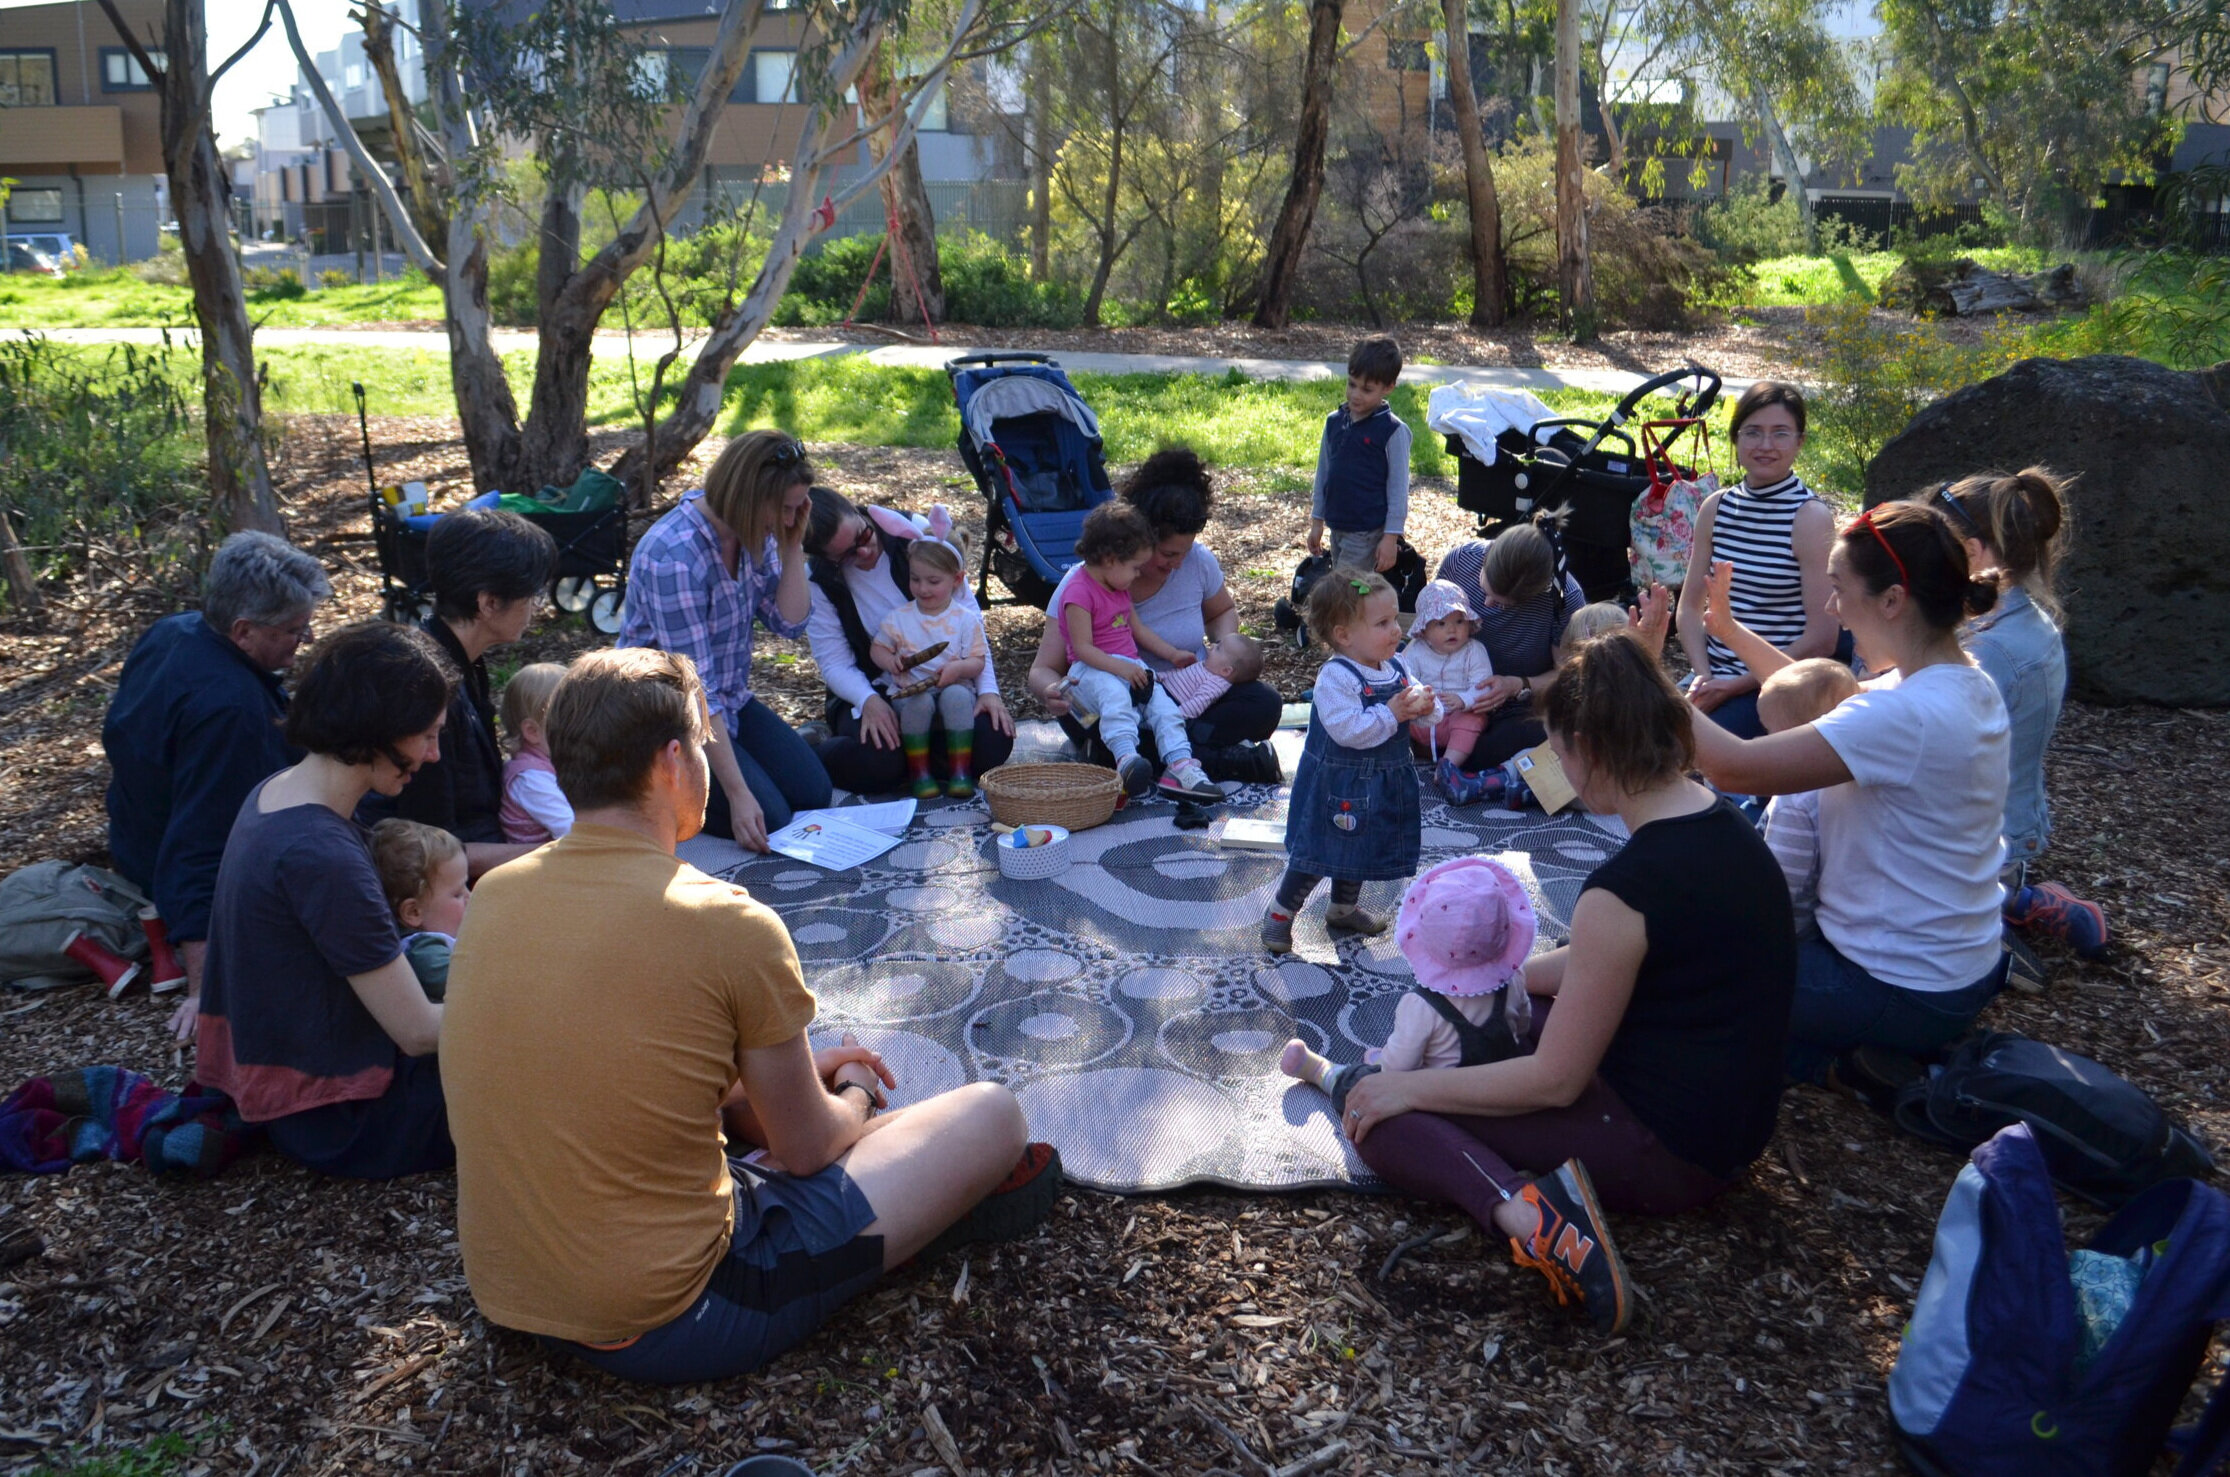 Reconnecting with the natural world and each other - Darebin Creek Bush Playgroup